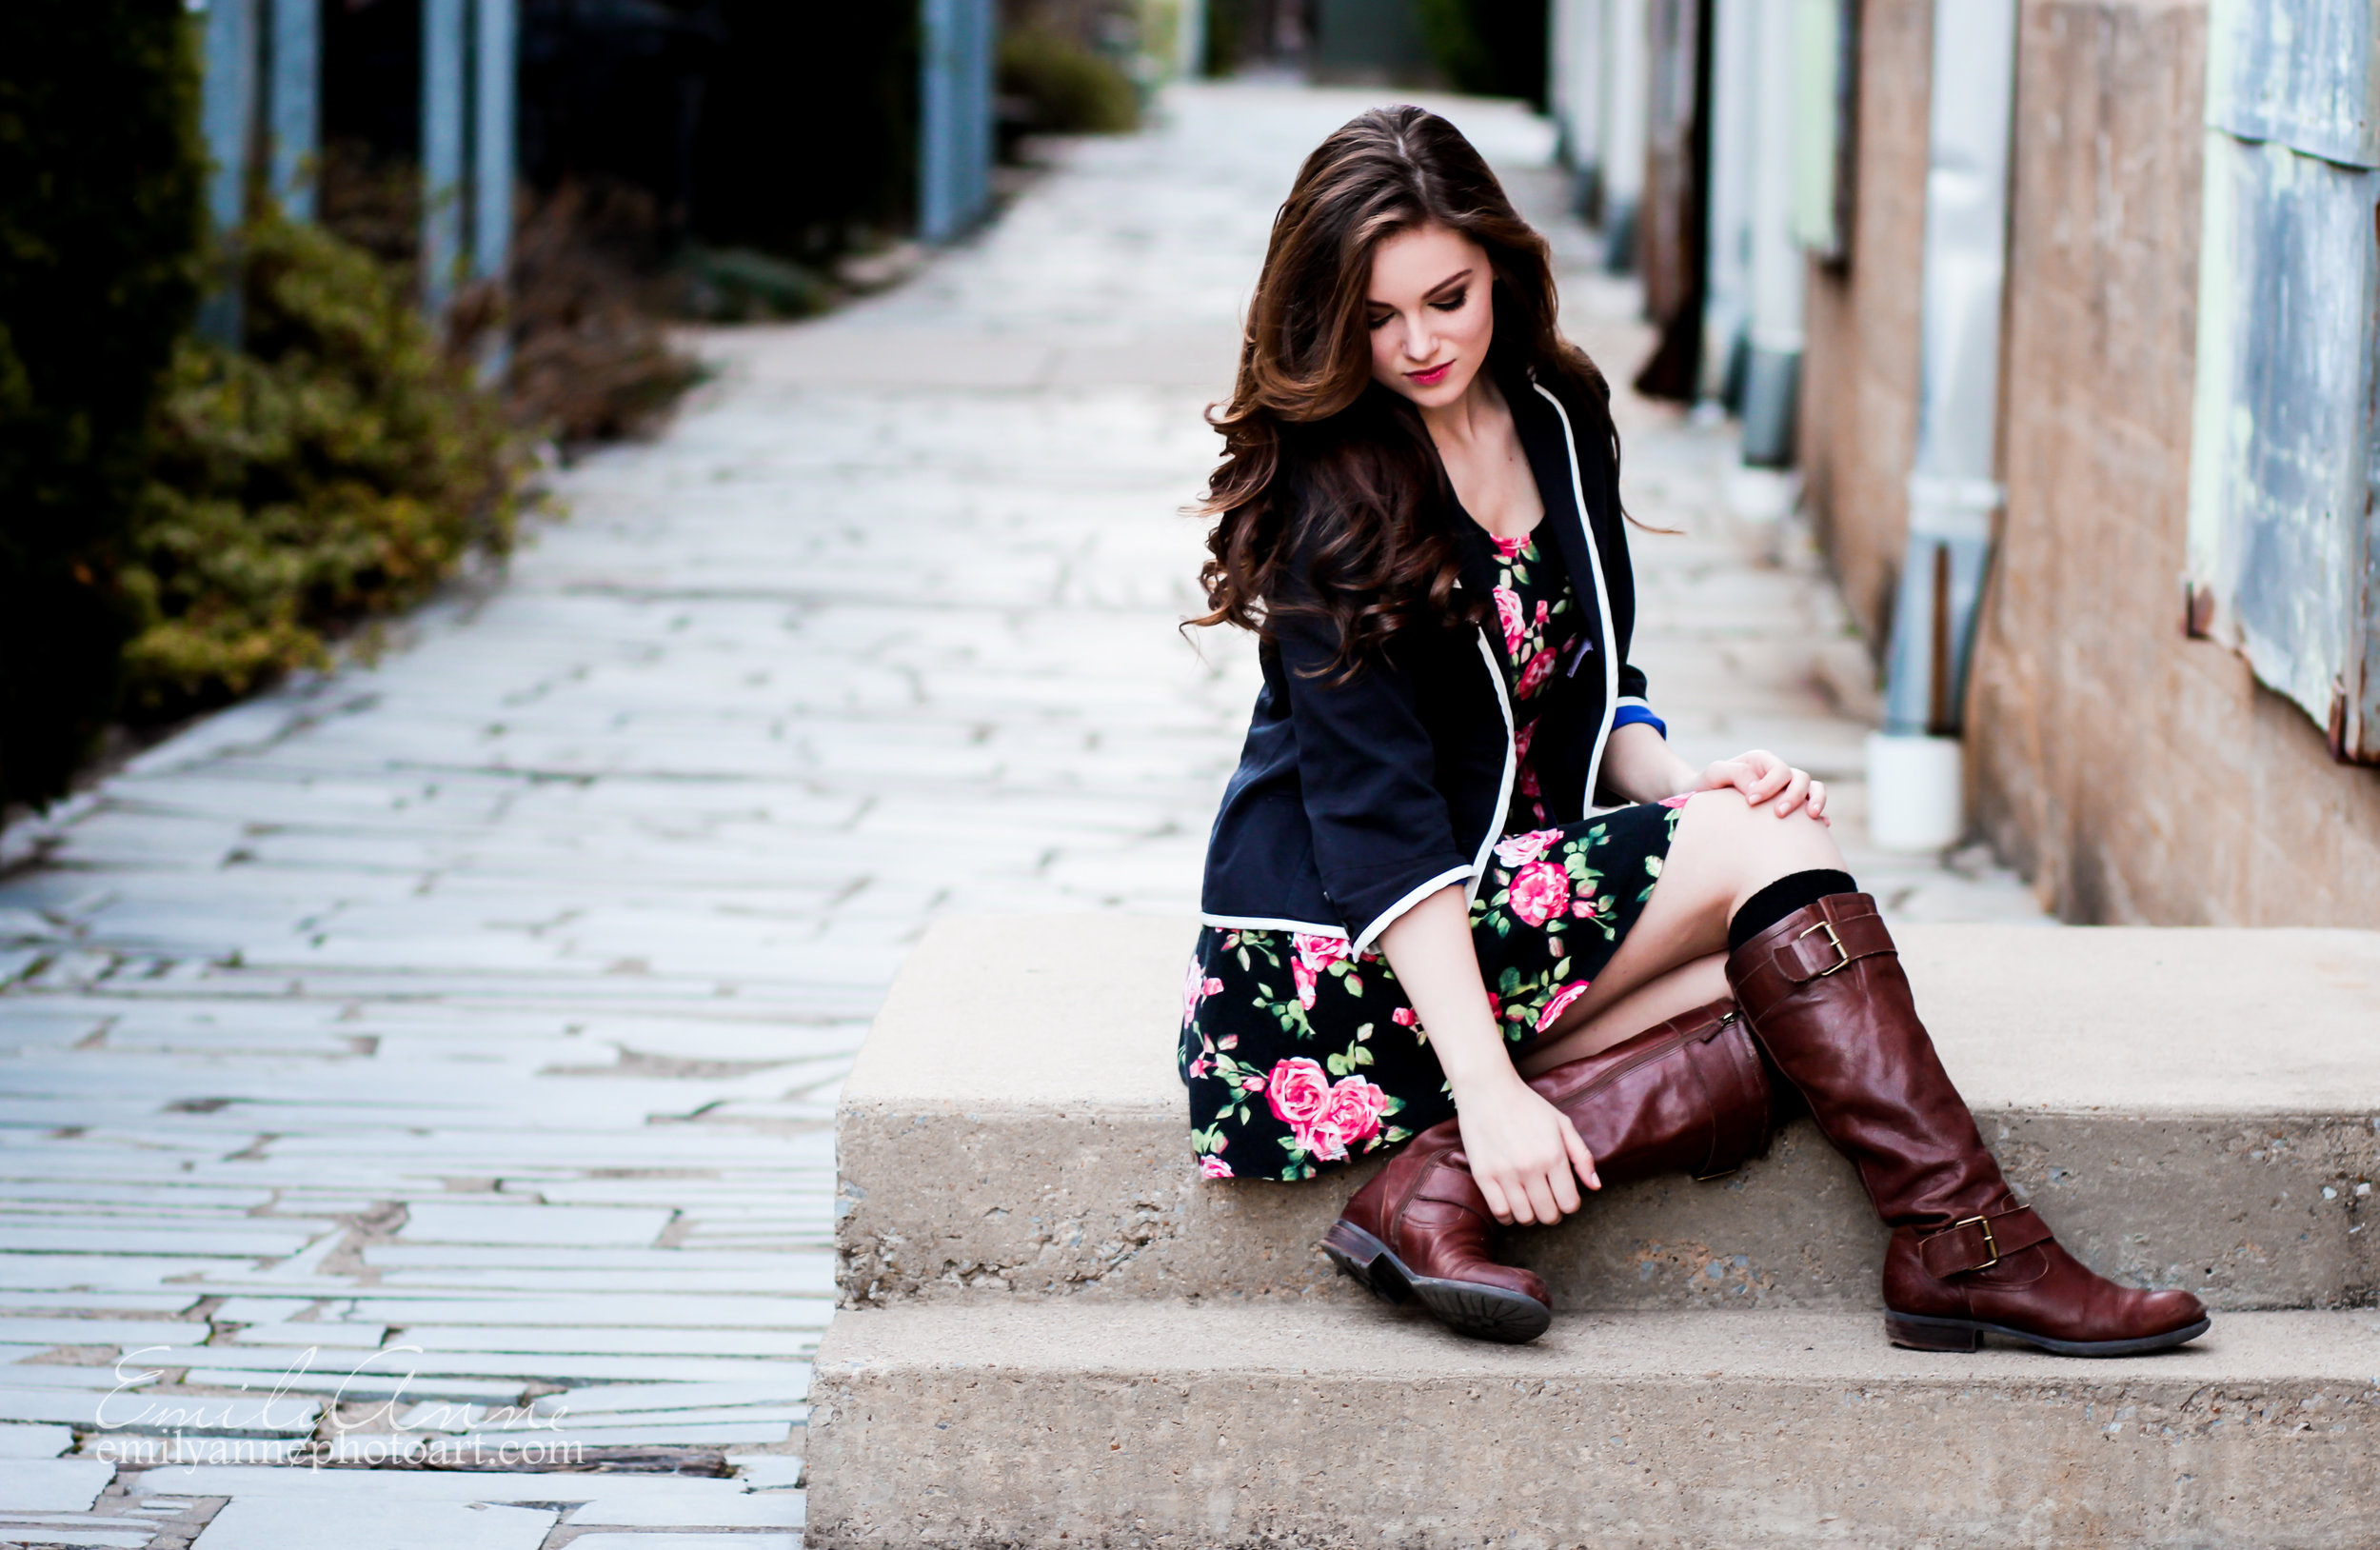 best senior portrait photographer emily anne photography in franklin, brentwood and nashville tennessee